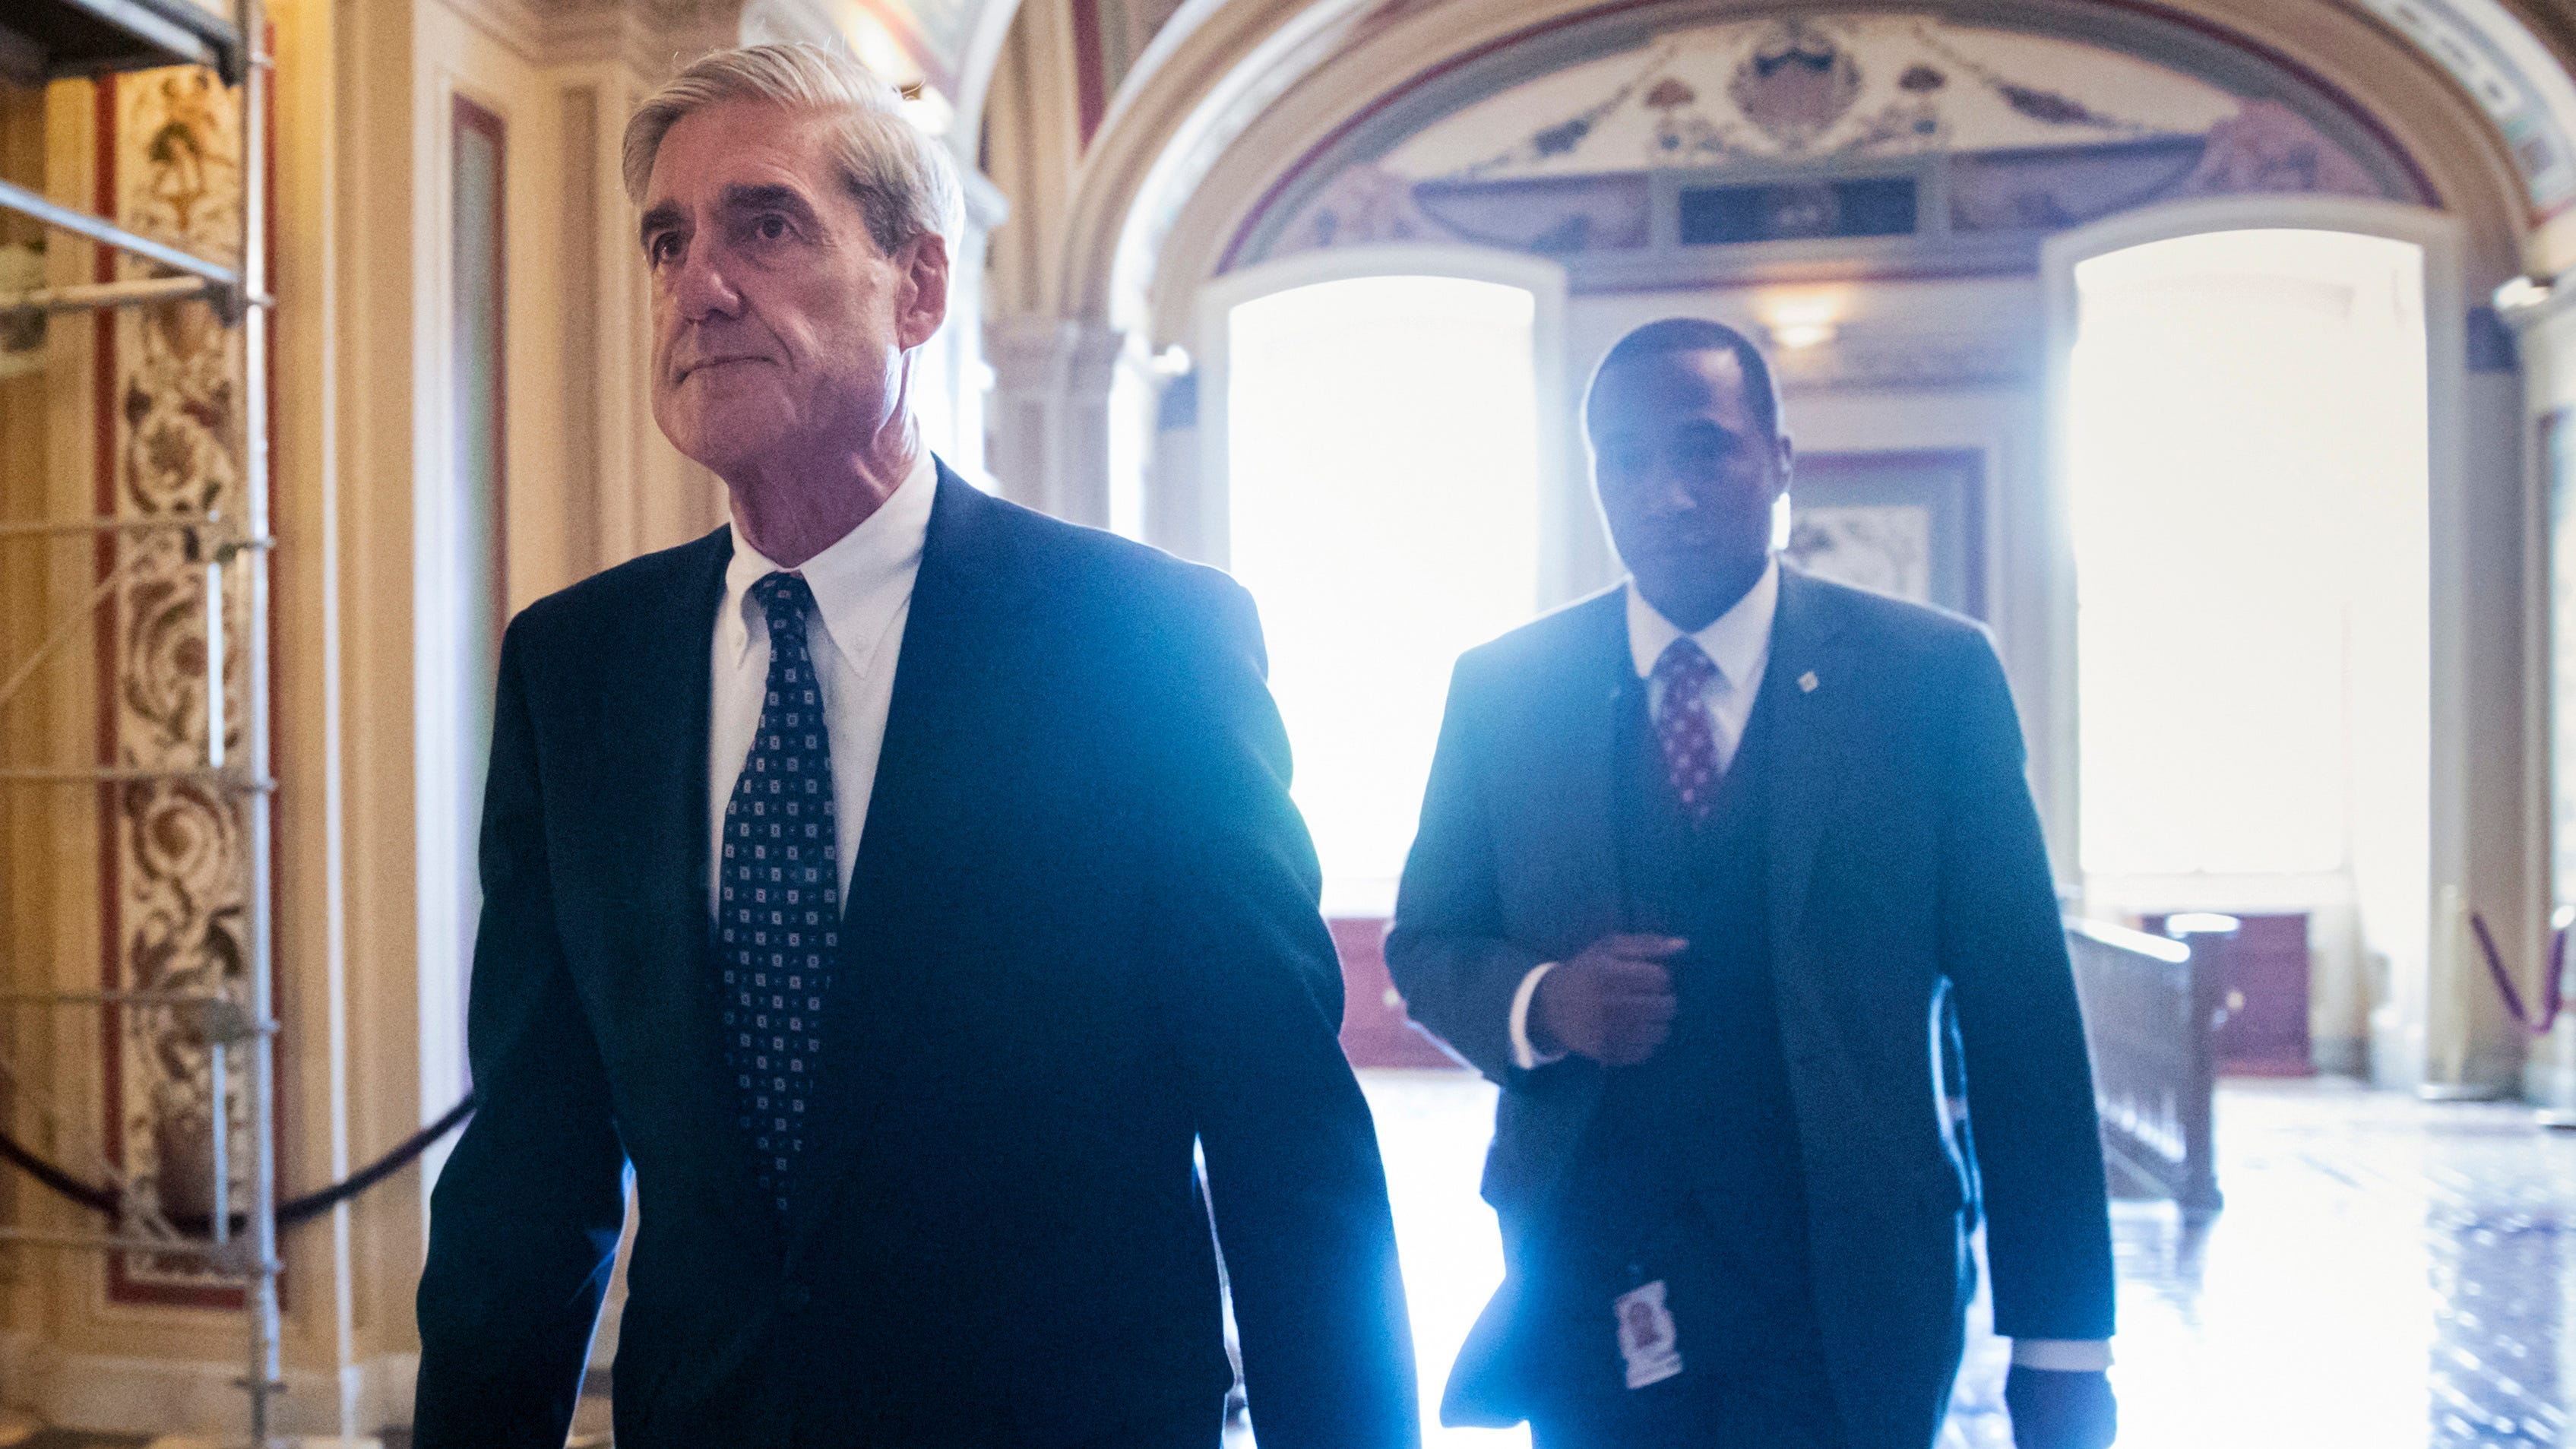 In this June 21, 2017, file photo, special counsel Robert Mueller departs the Capitol after a closed-door meeting with members of the Senate Judiciary Committee about Russian meddling in the election and possible connection to the Trump campaign in Washington.